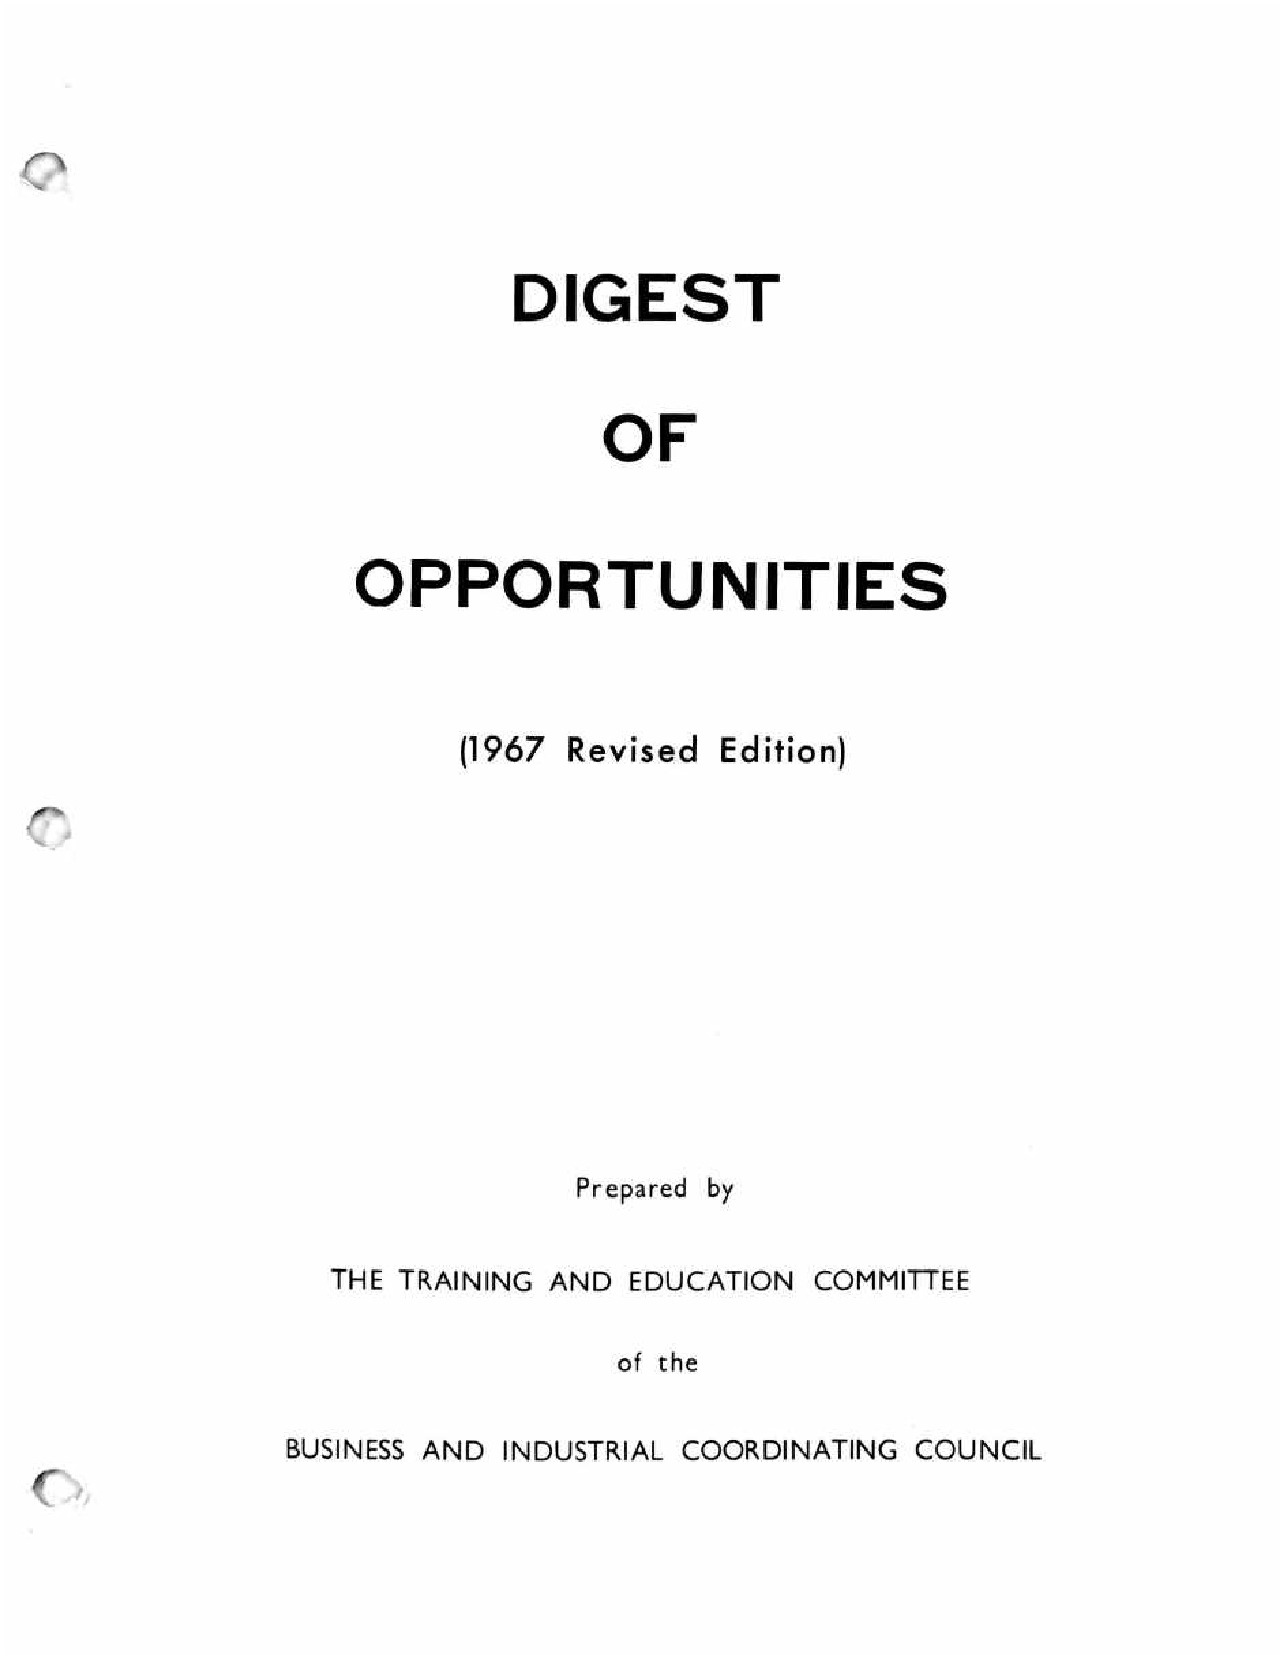 BICC Digest of Opportunities (1967)